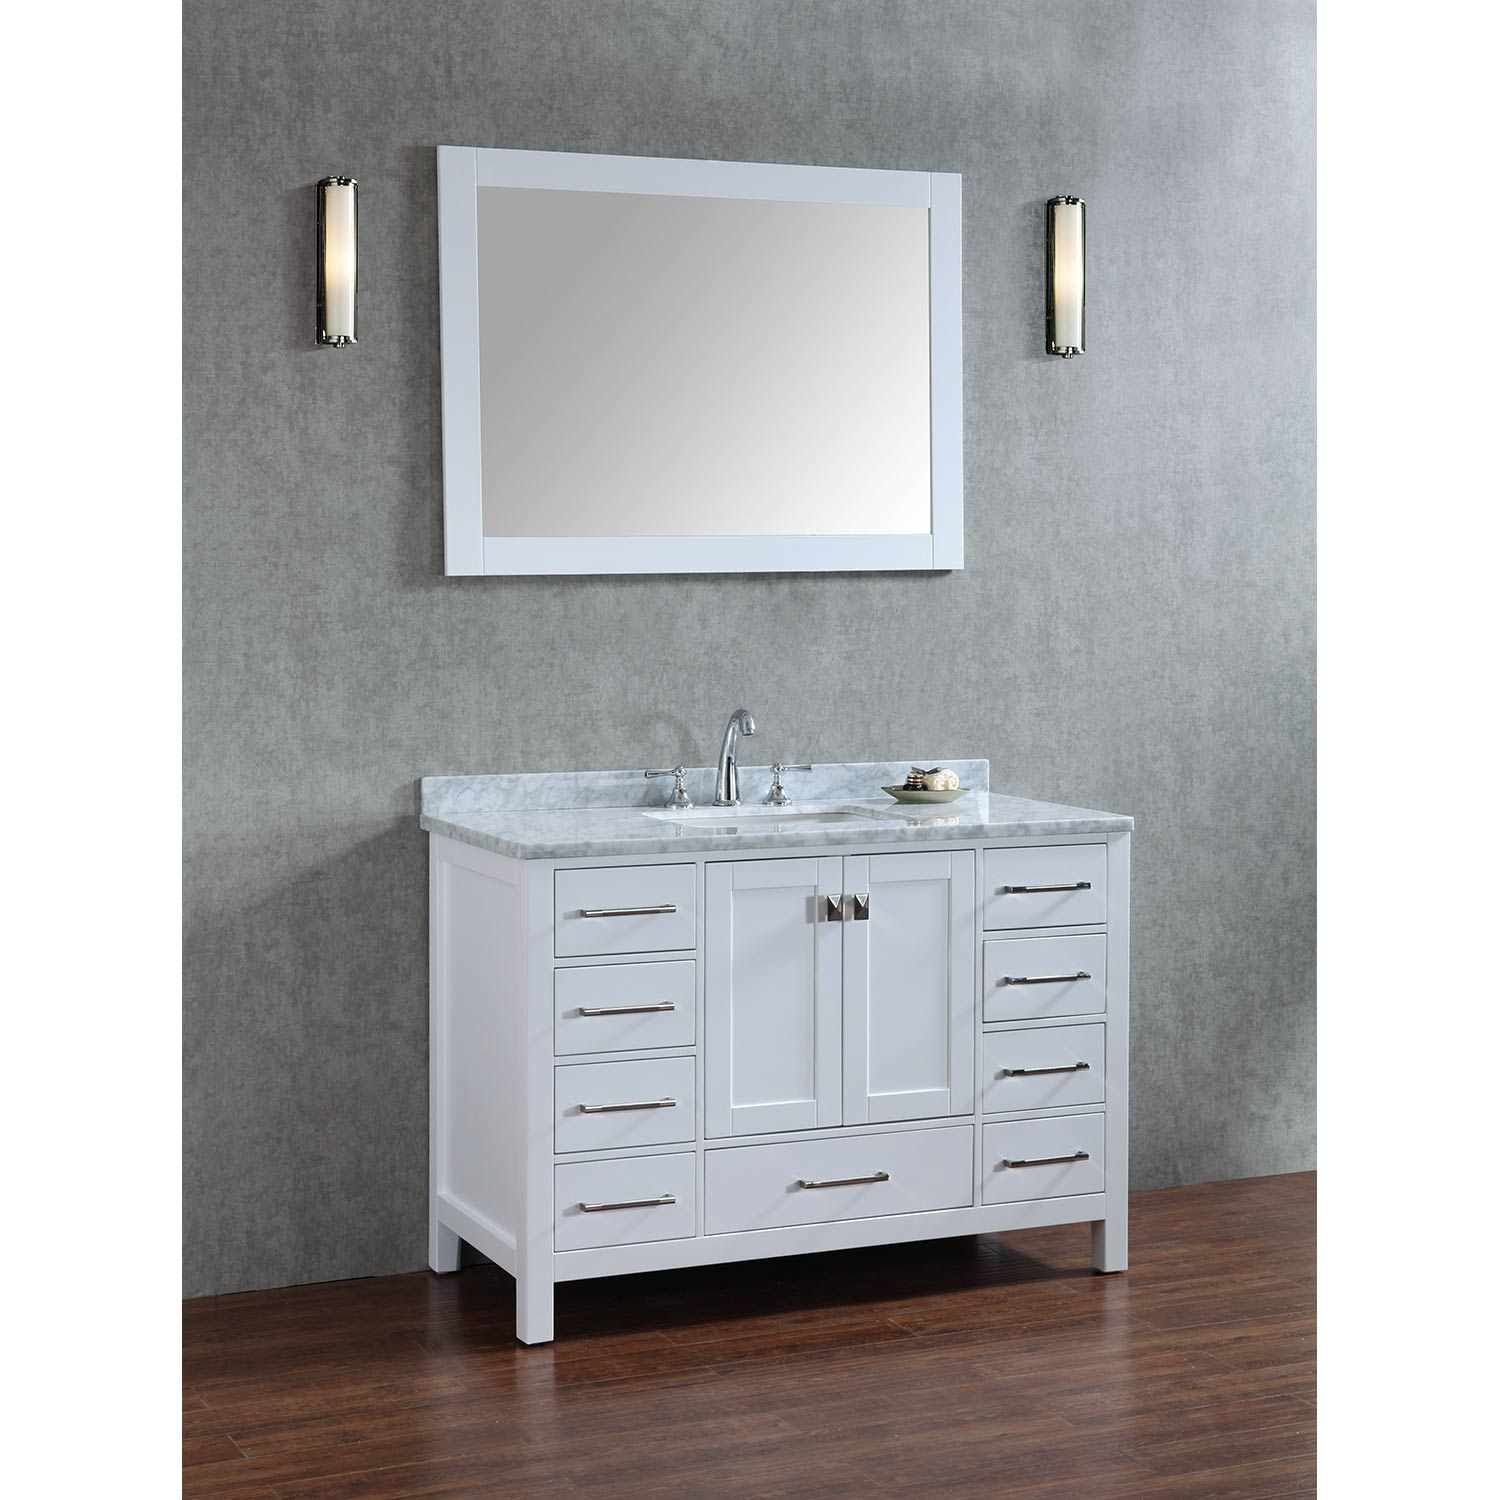 Buy Vincent 48 Inch Solid Wood Single Bathroom Vanity In White Hm 13001 48 Wmsq Wt